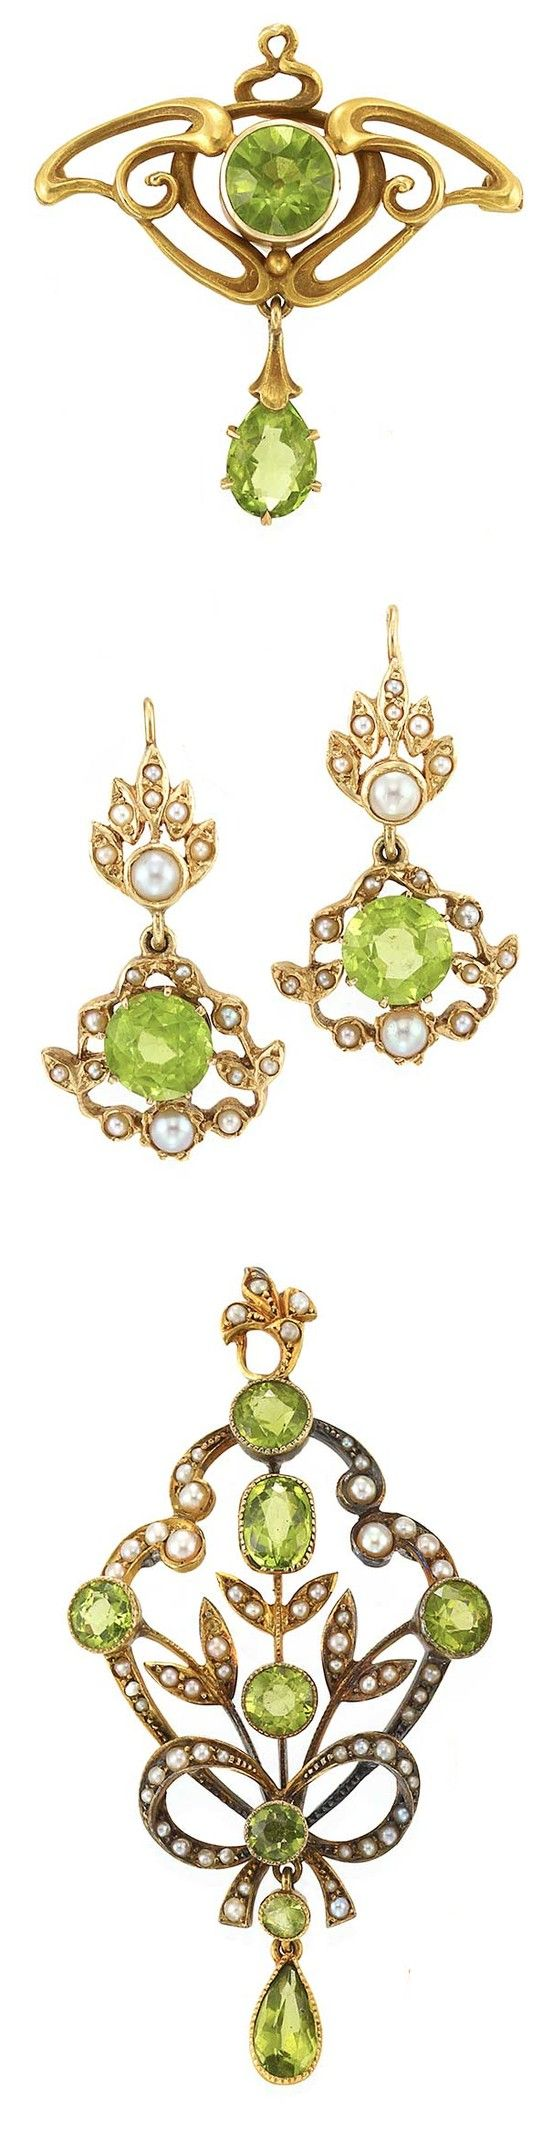 Art Nouveau Gold and Peridot Pin and Gold, Peridot and Split Pearl Pendant-Brooch and Pair of Pendant-Earrings  15 ct. & 14 kt., c. 1900, ap. 12.7 dwts.